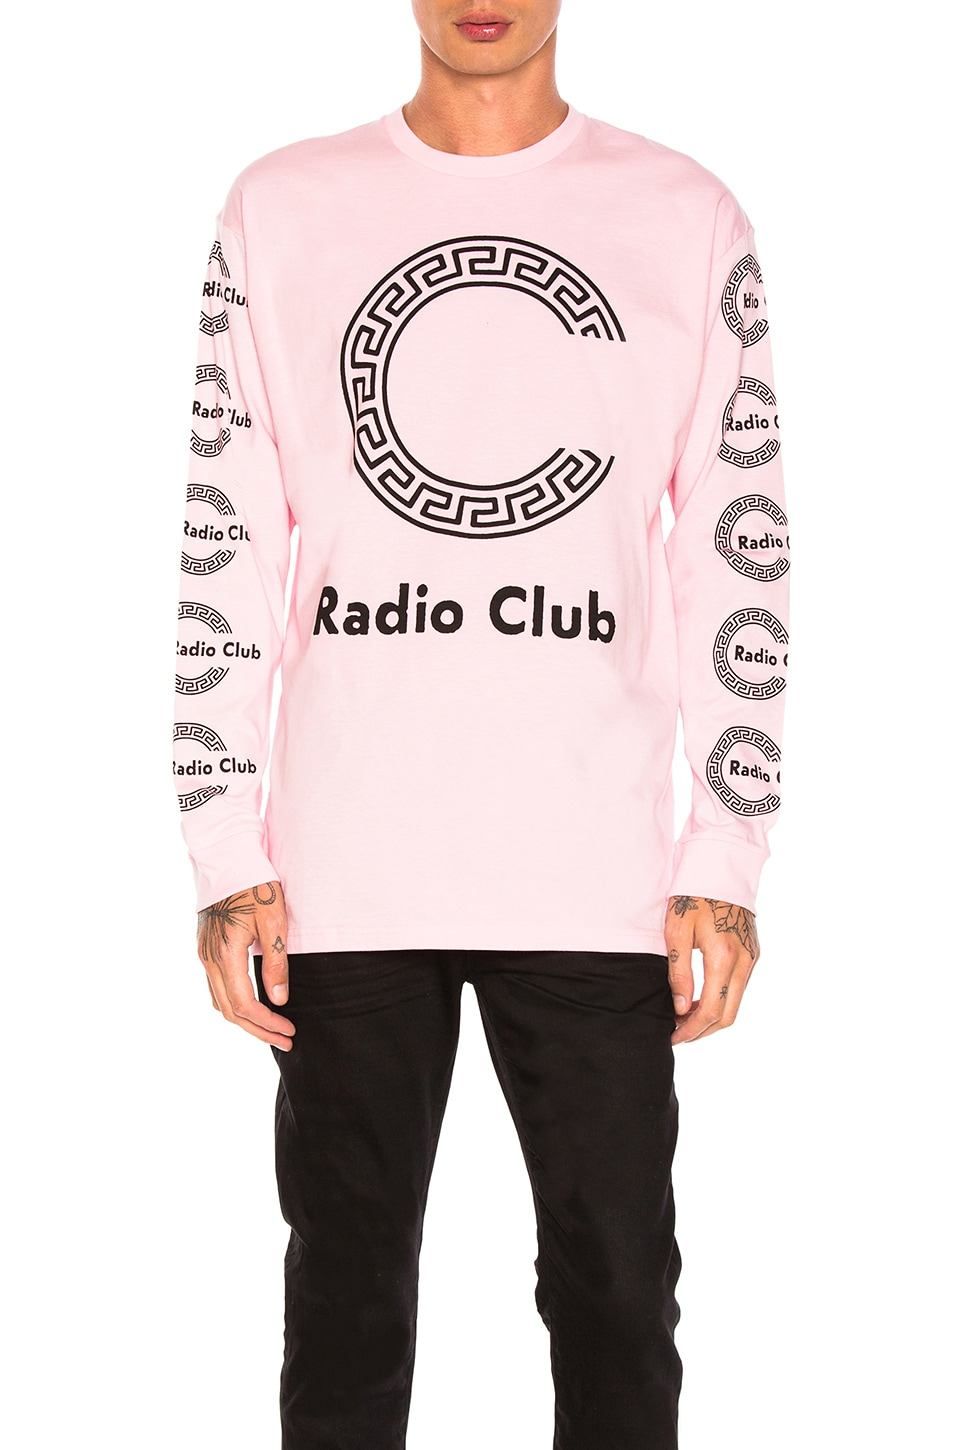 Radio Club Roma Tee by Carhartt WIP